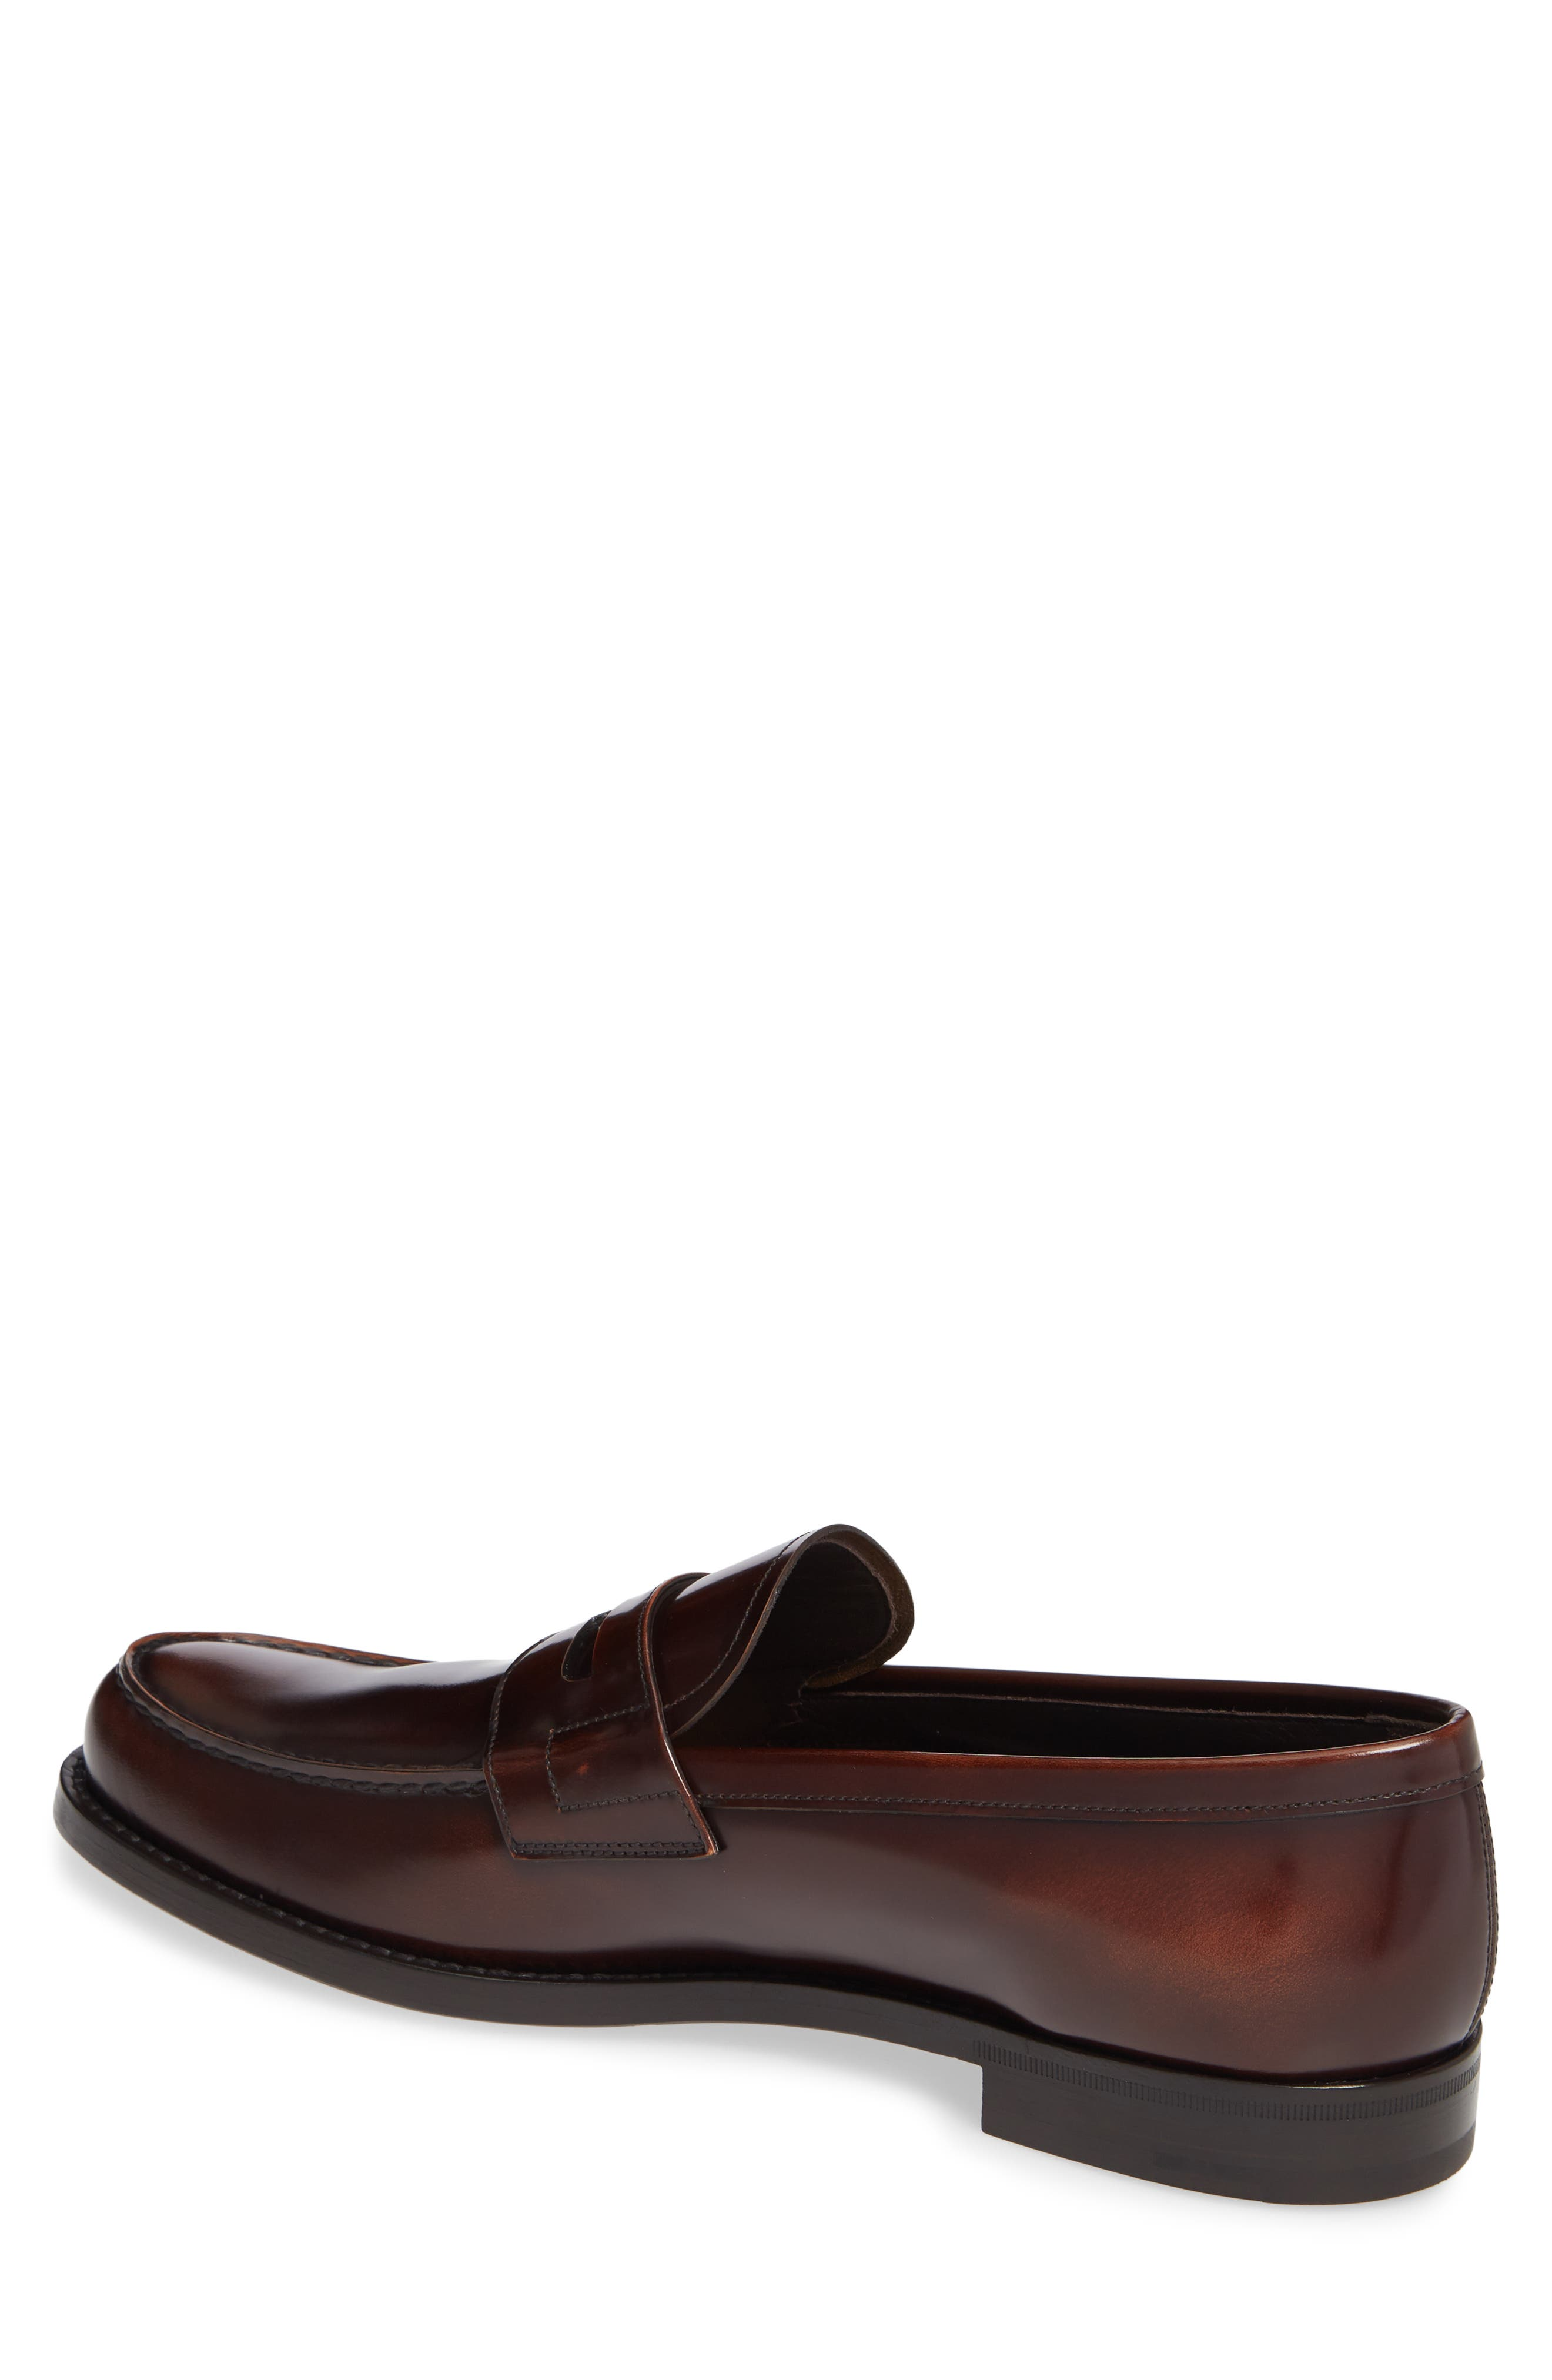 Penny Loafer,                             Alternate thumbnail 2, color,                             TOBACCO